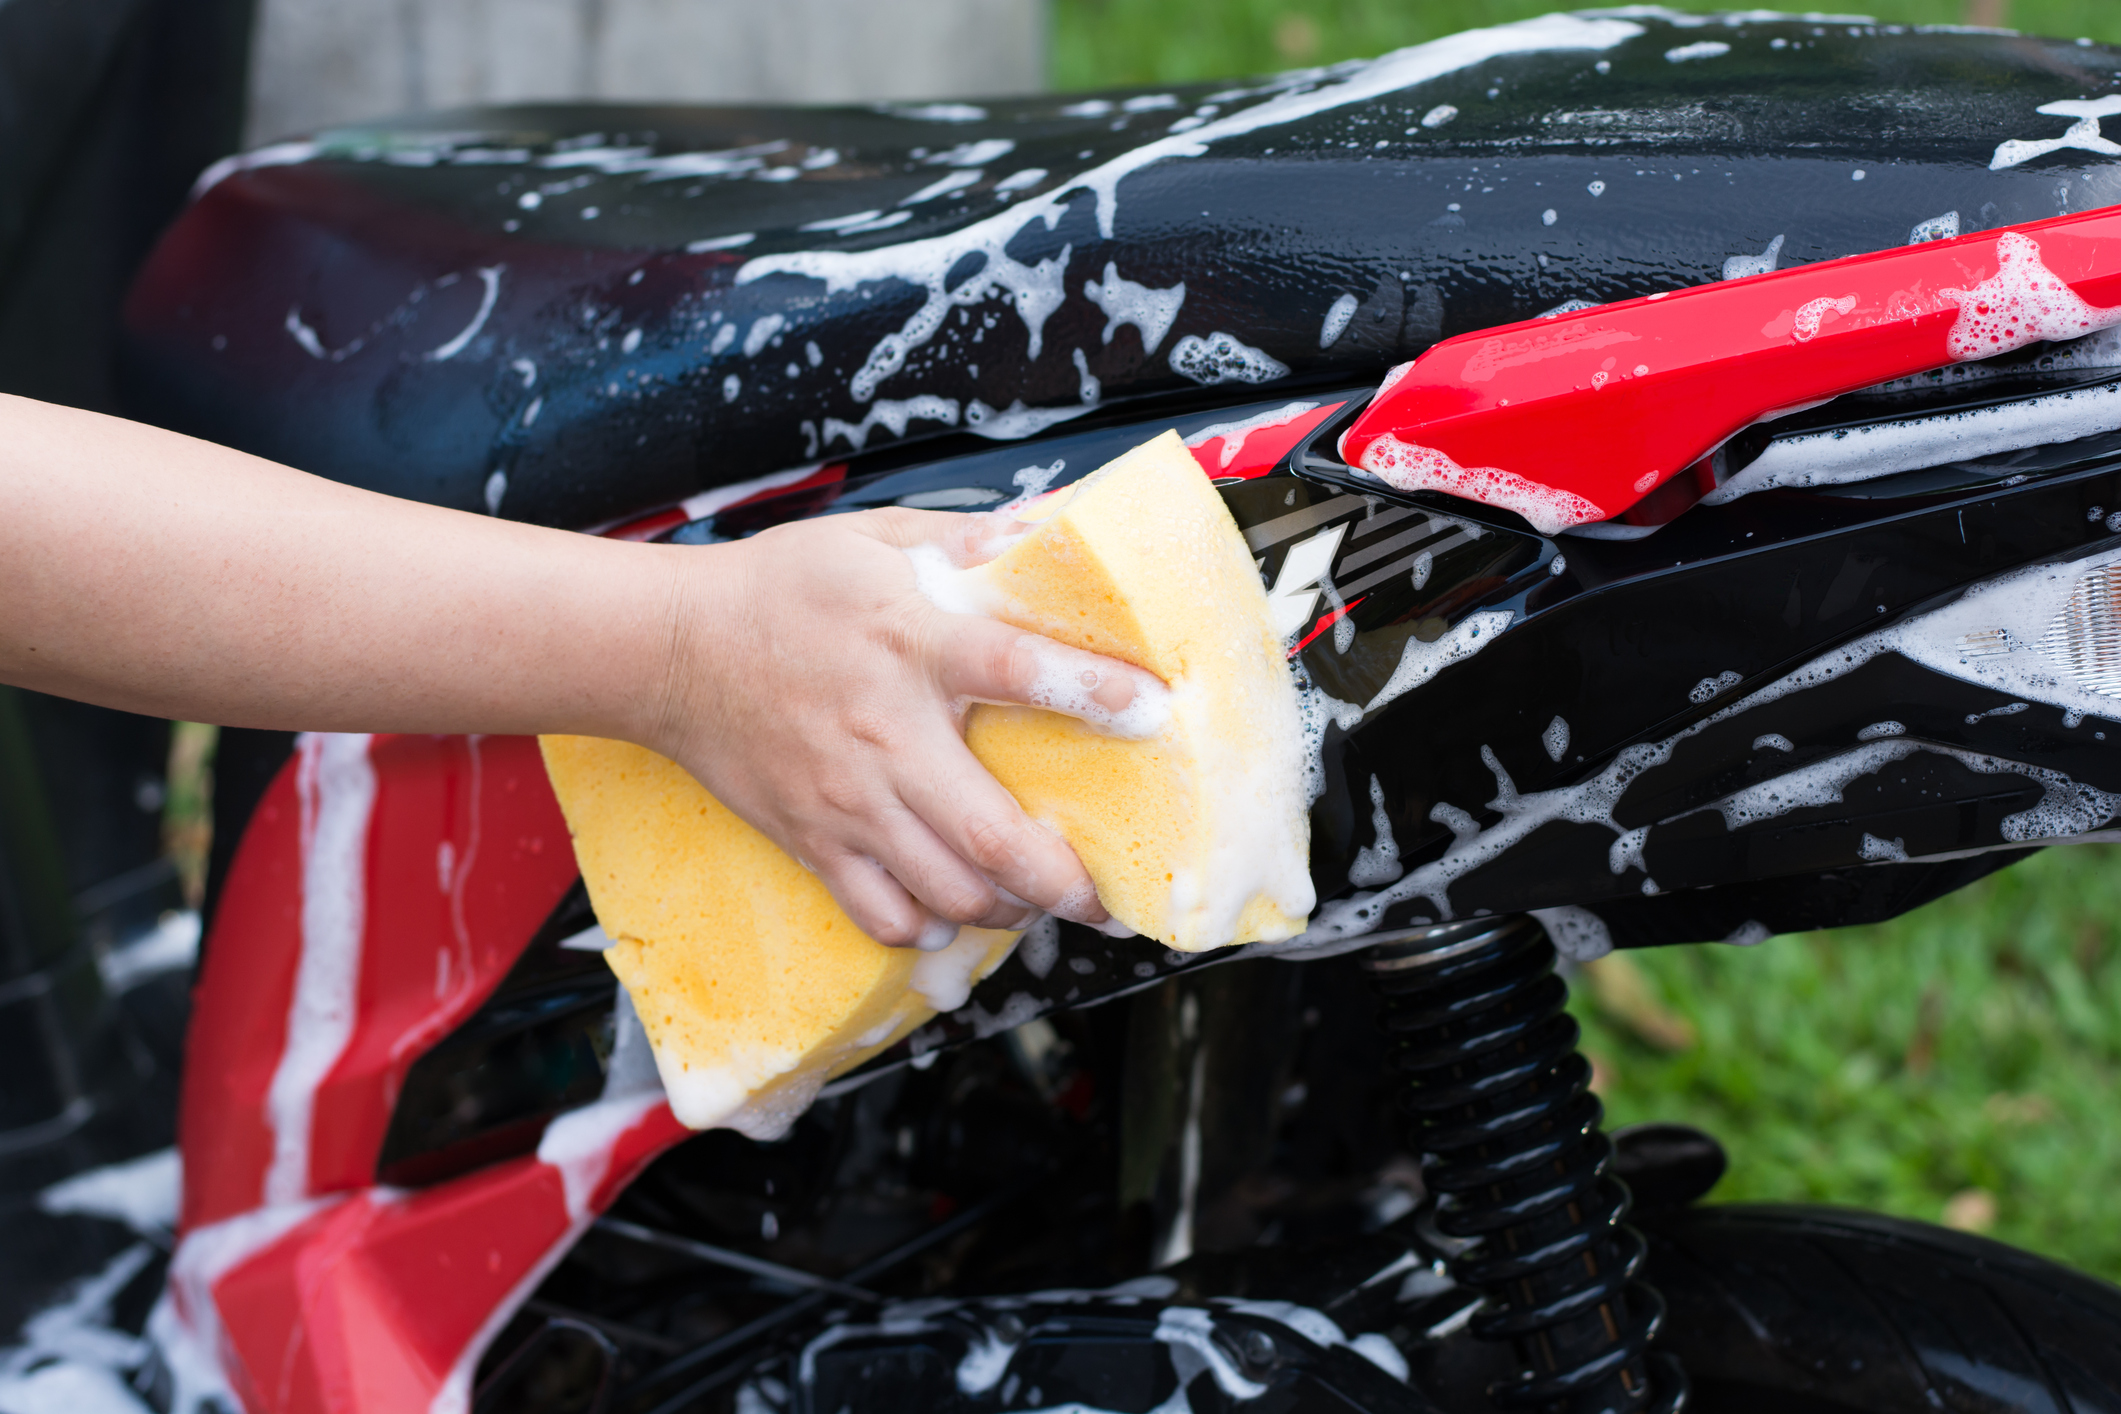 Female hand with  yellow sponge  washing a motorcycle.